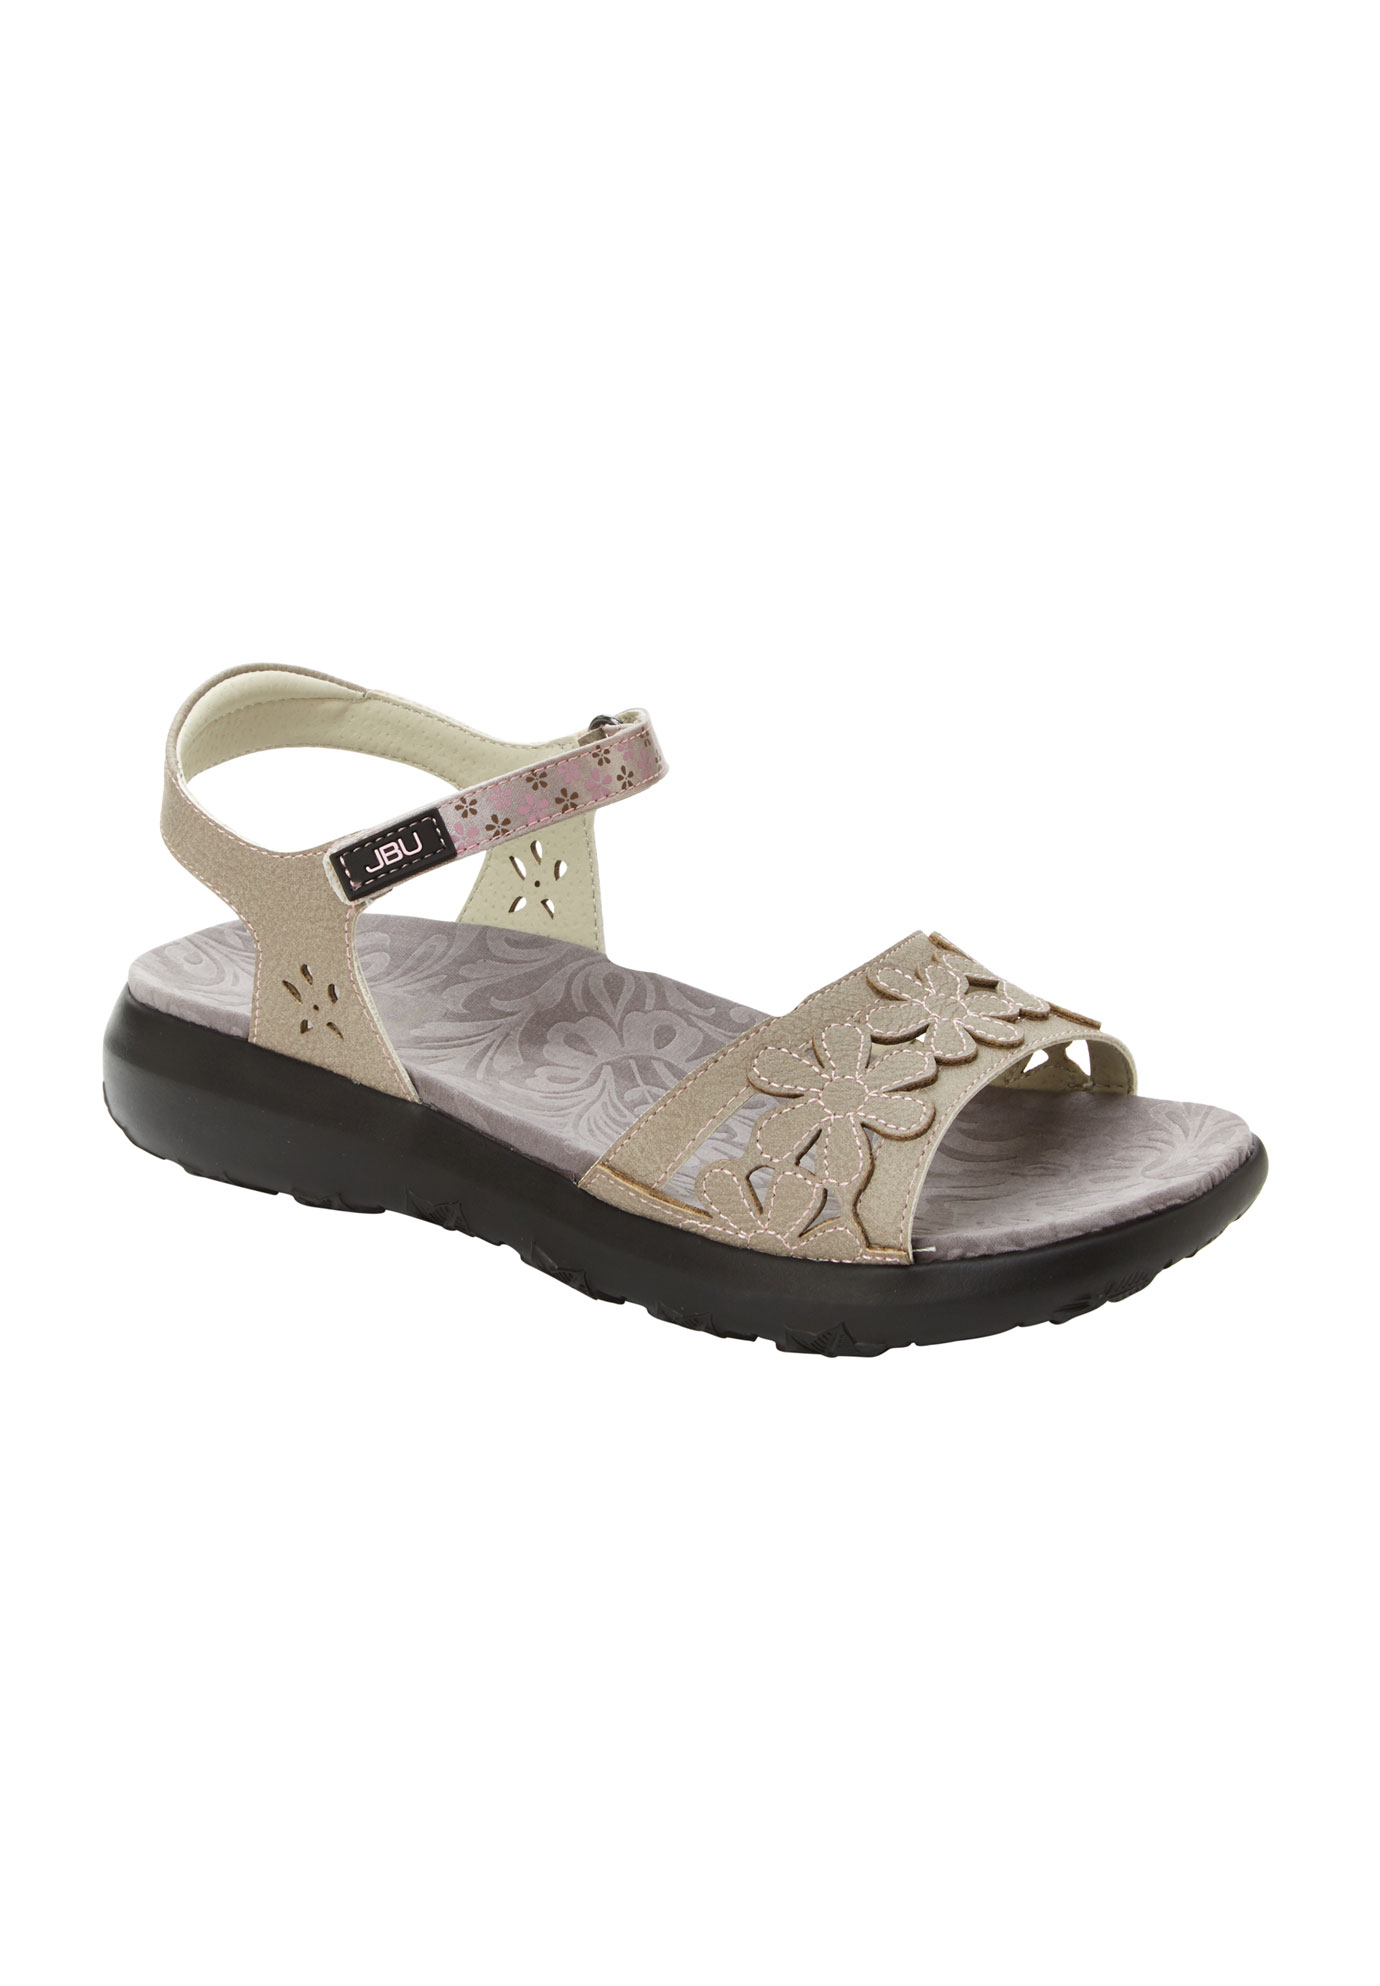 Wildflower Sandal by JBU®,